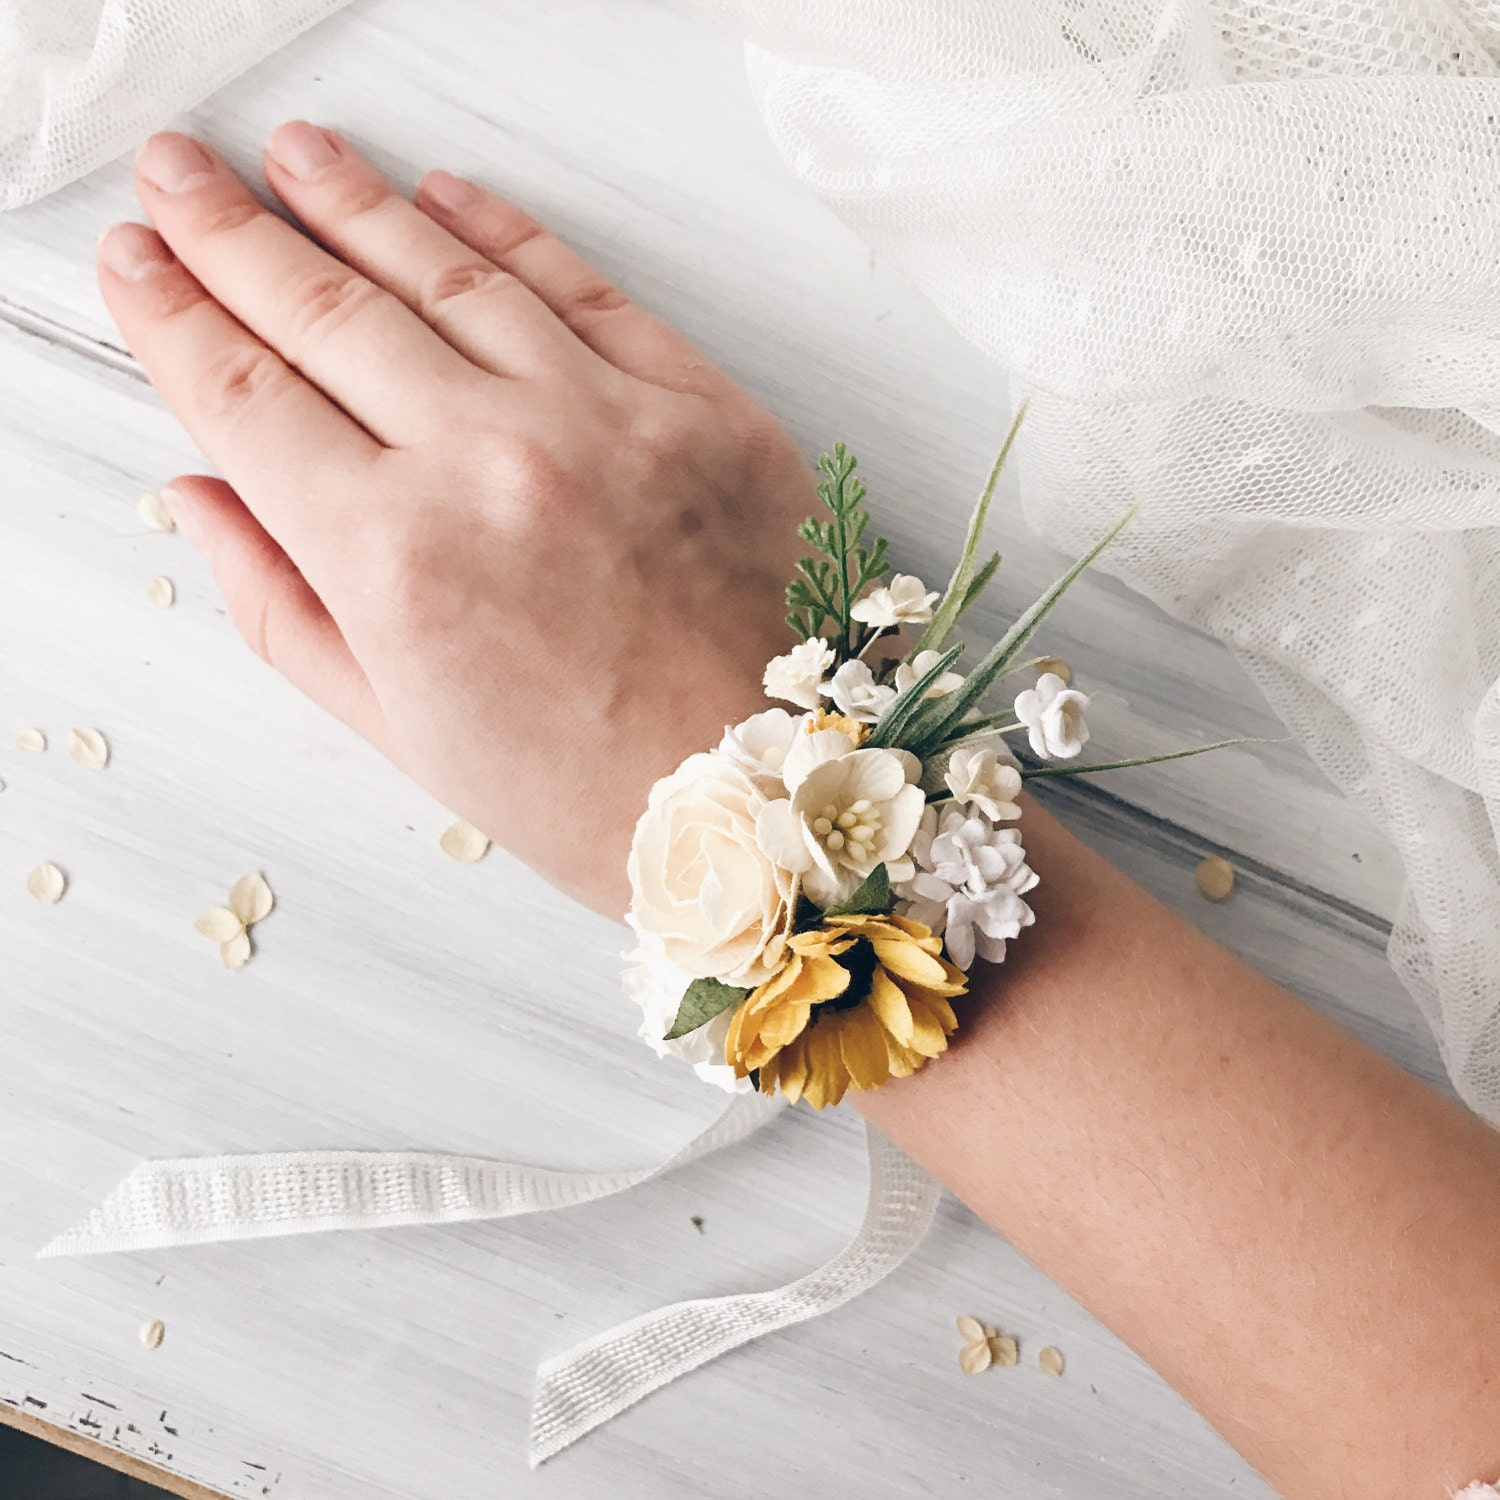 Wrist Corsages Wedding: Flower Wrist Corsage Sunflowers Bridesmaids Wrist Corsage